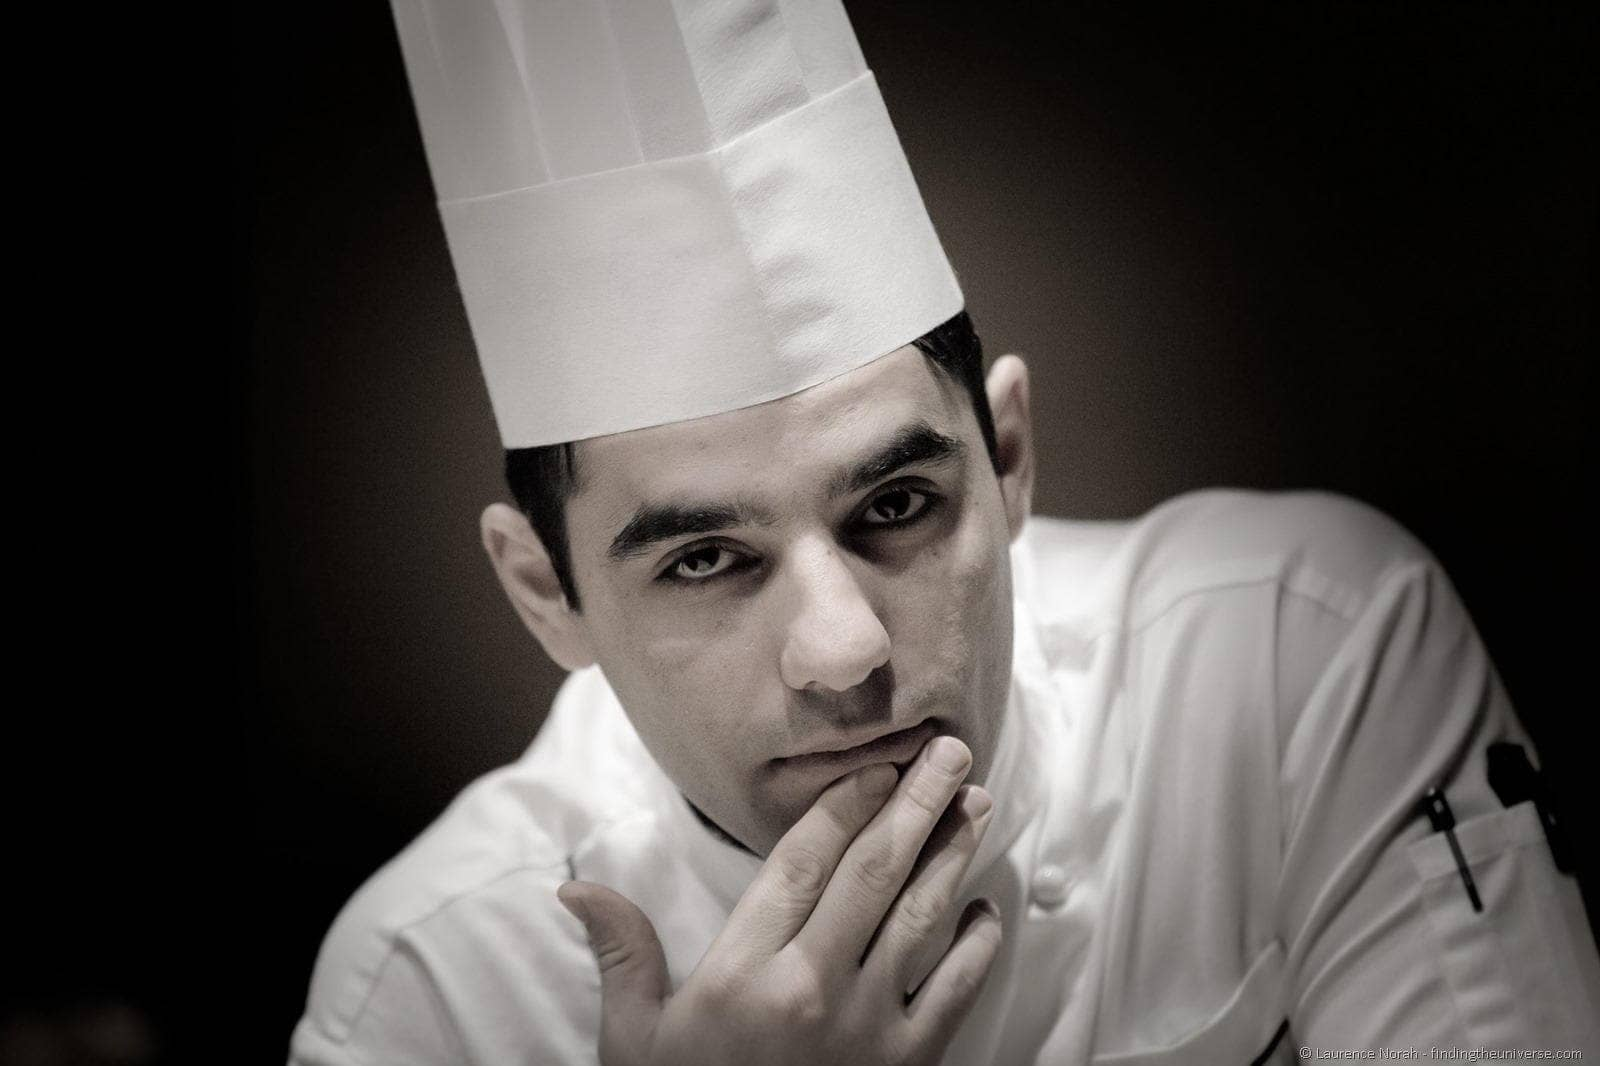 Chef Rotana scaled